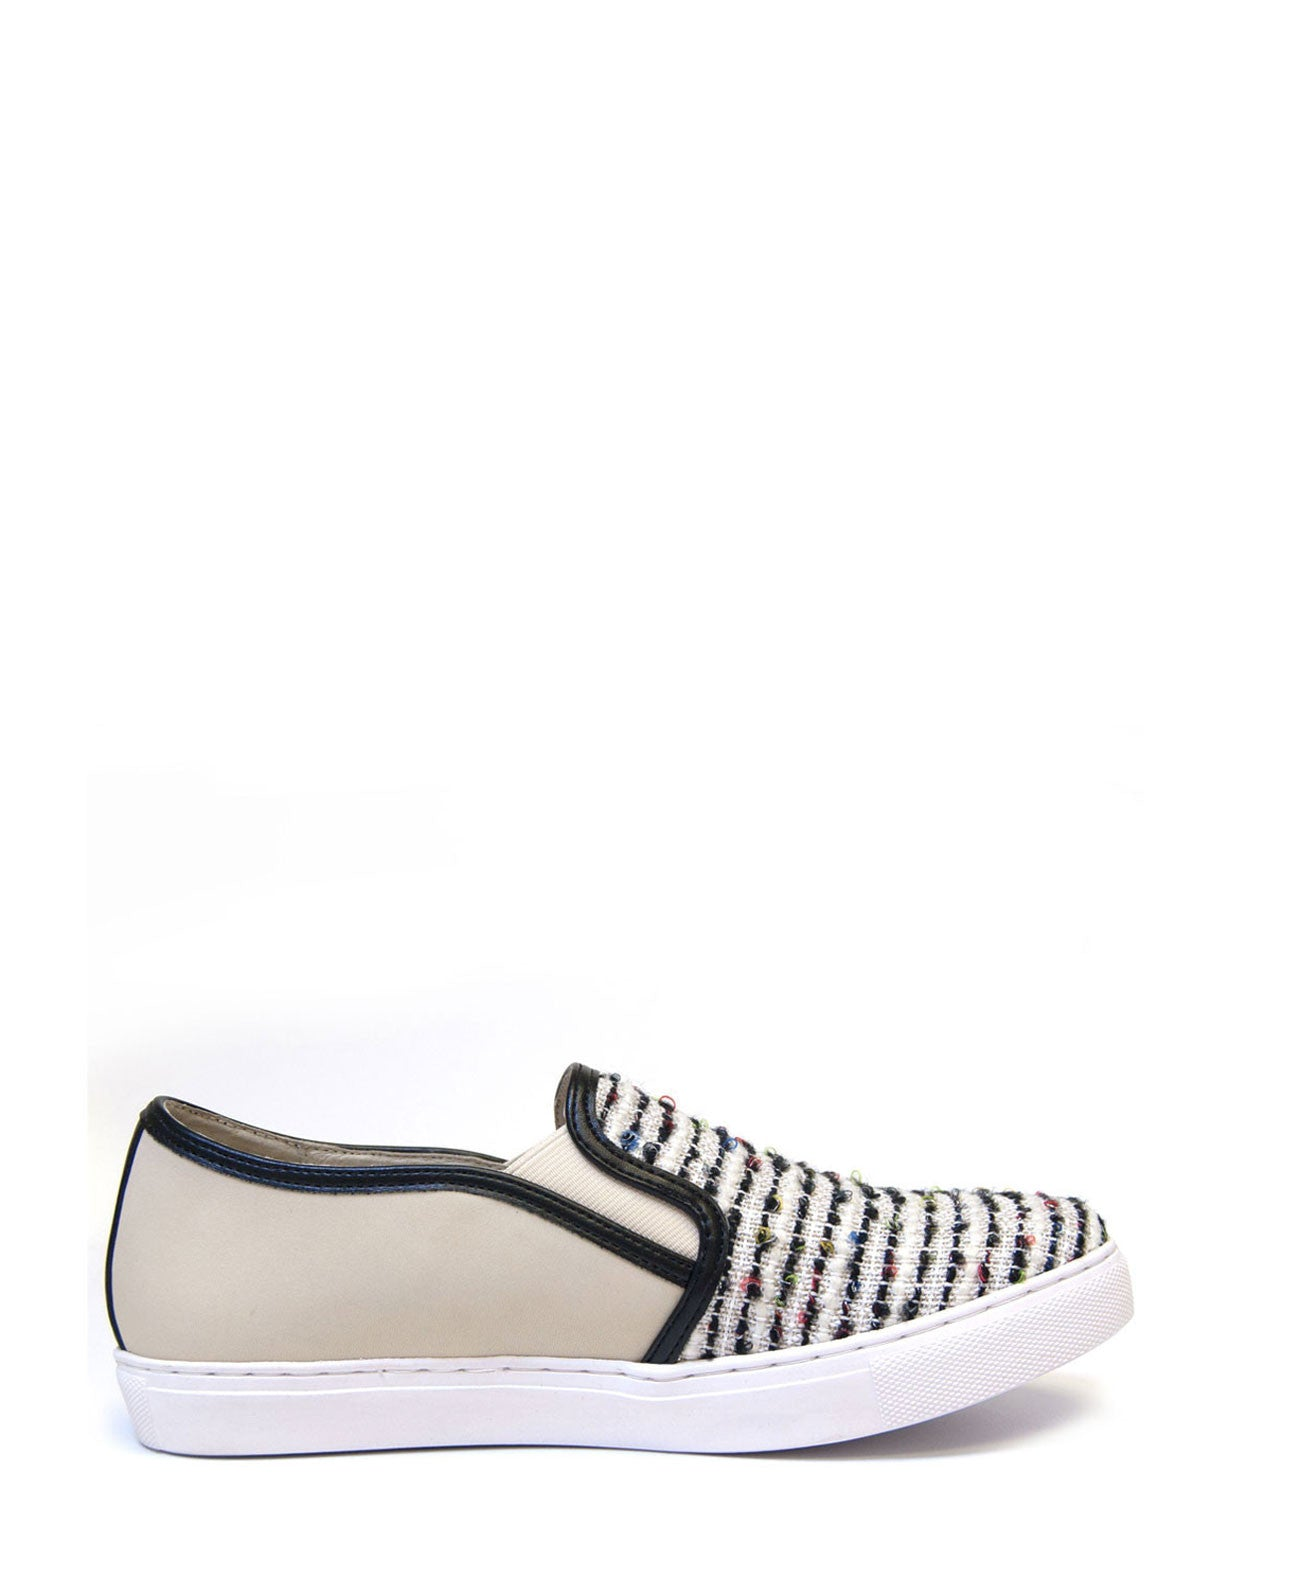 Sammi Woolen Slip-On Sneaker (Off White) by J Slides - Koko & Palenki - 1